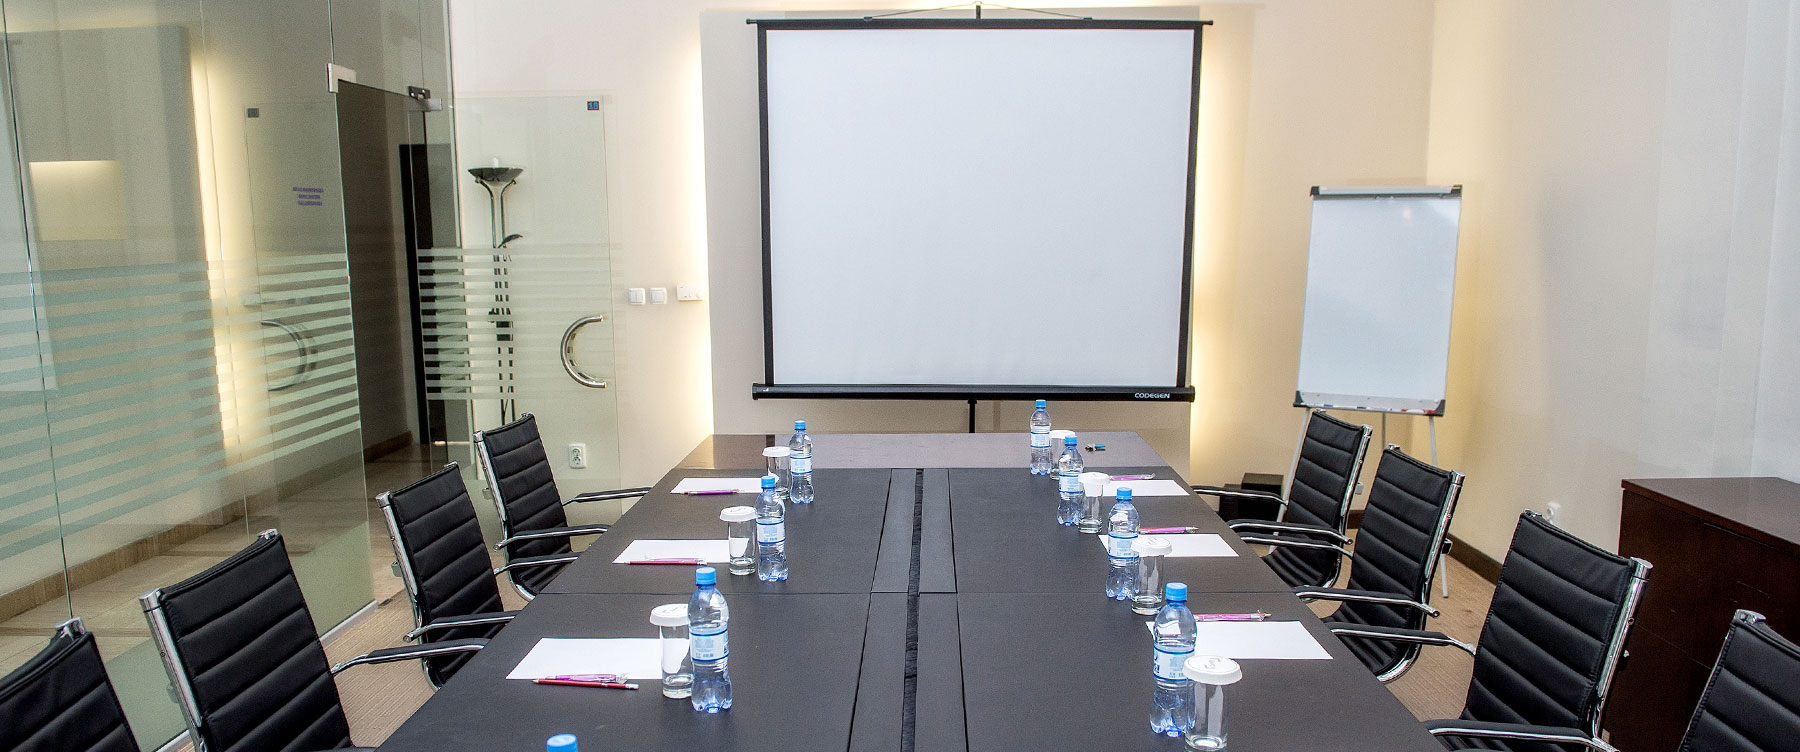 Meeting room in Canvas Hotel